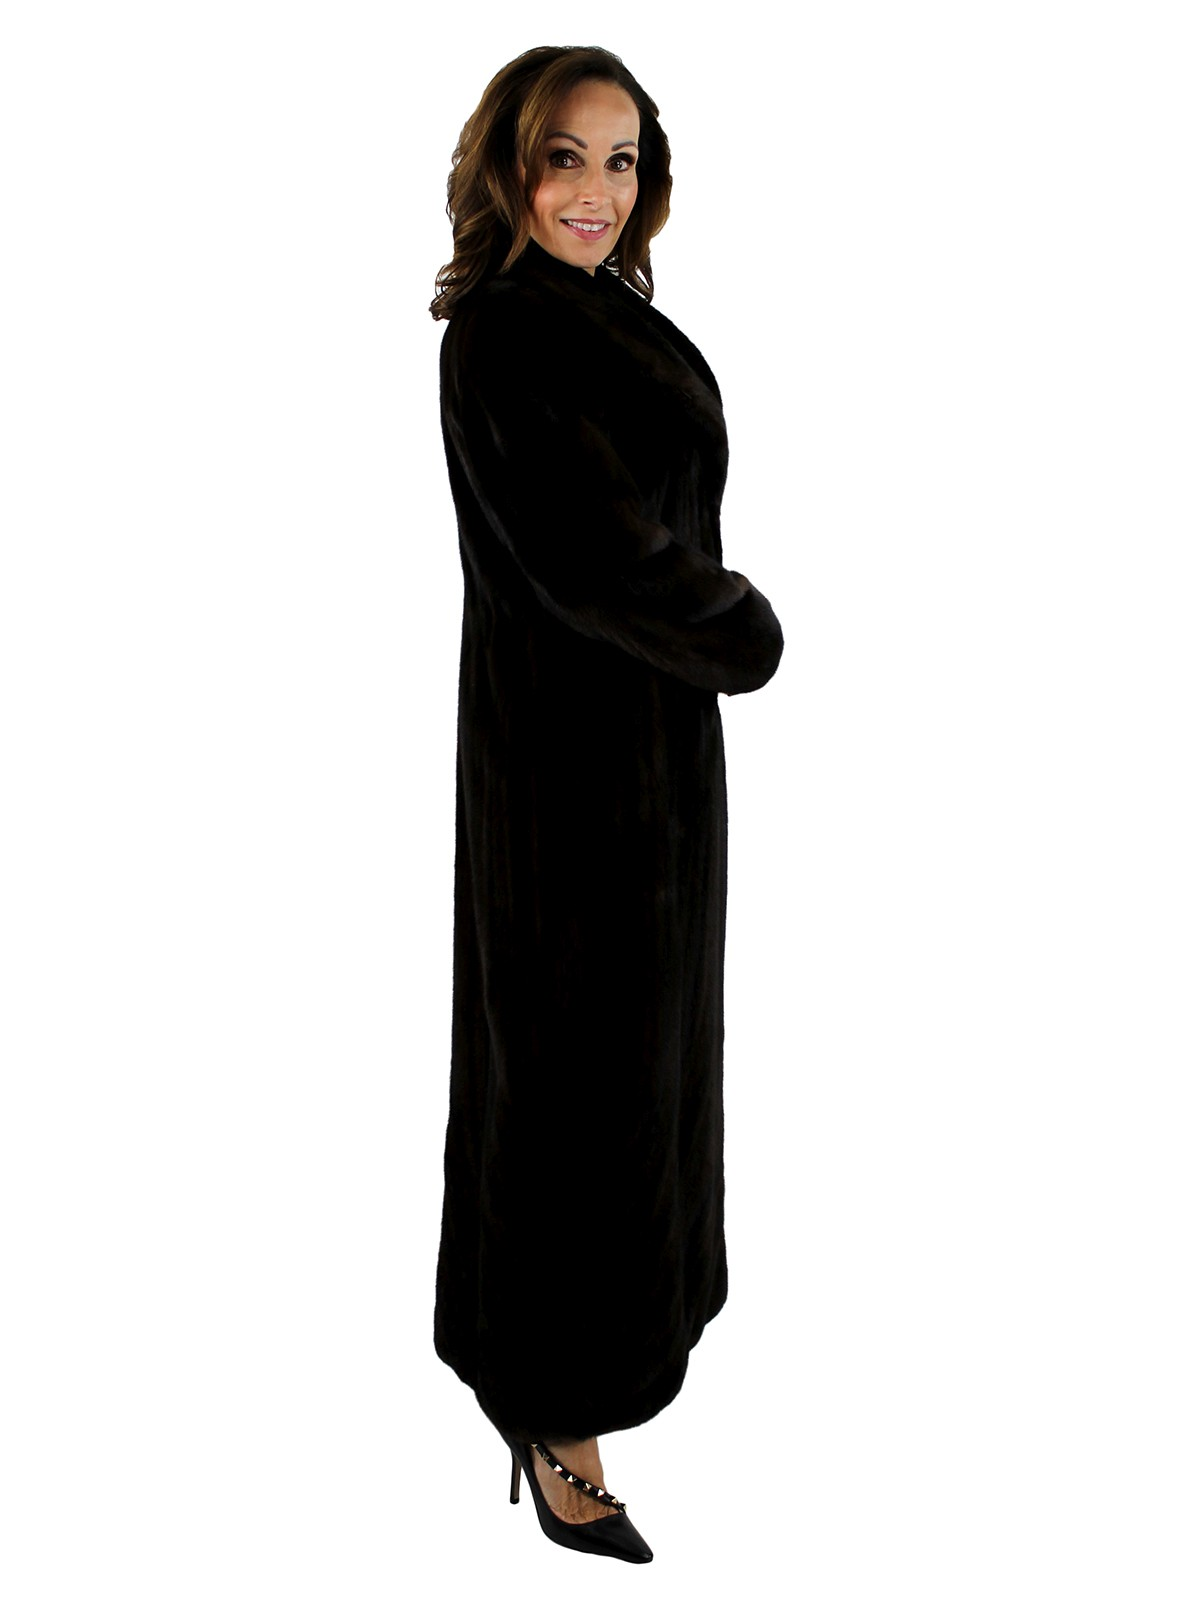 Gorski Mahogany Directional Let Out Mink Coat Reversible to Taffeta